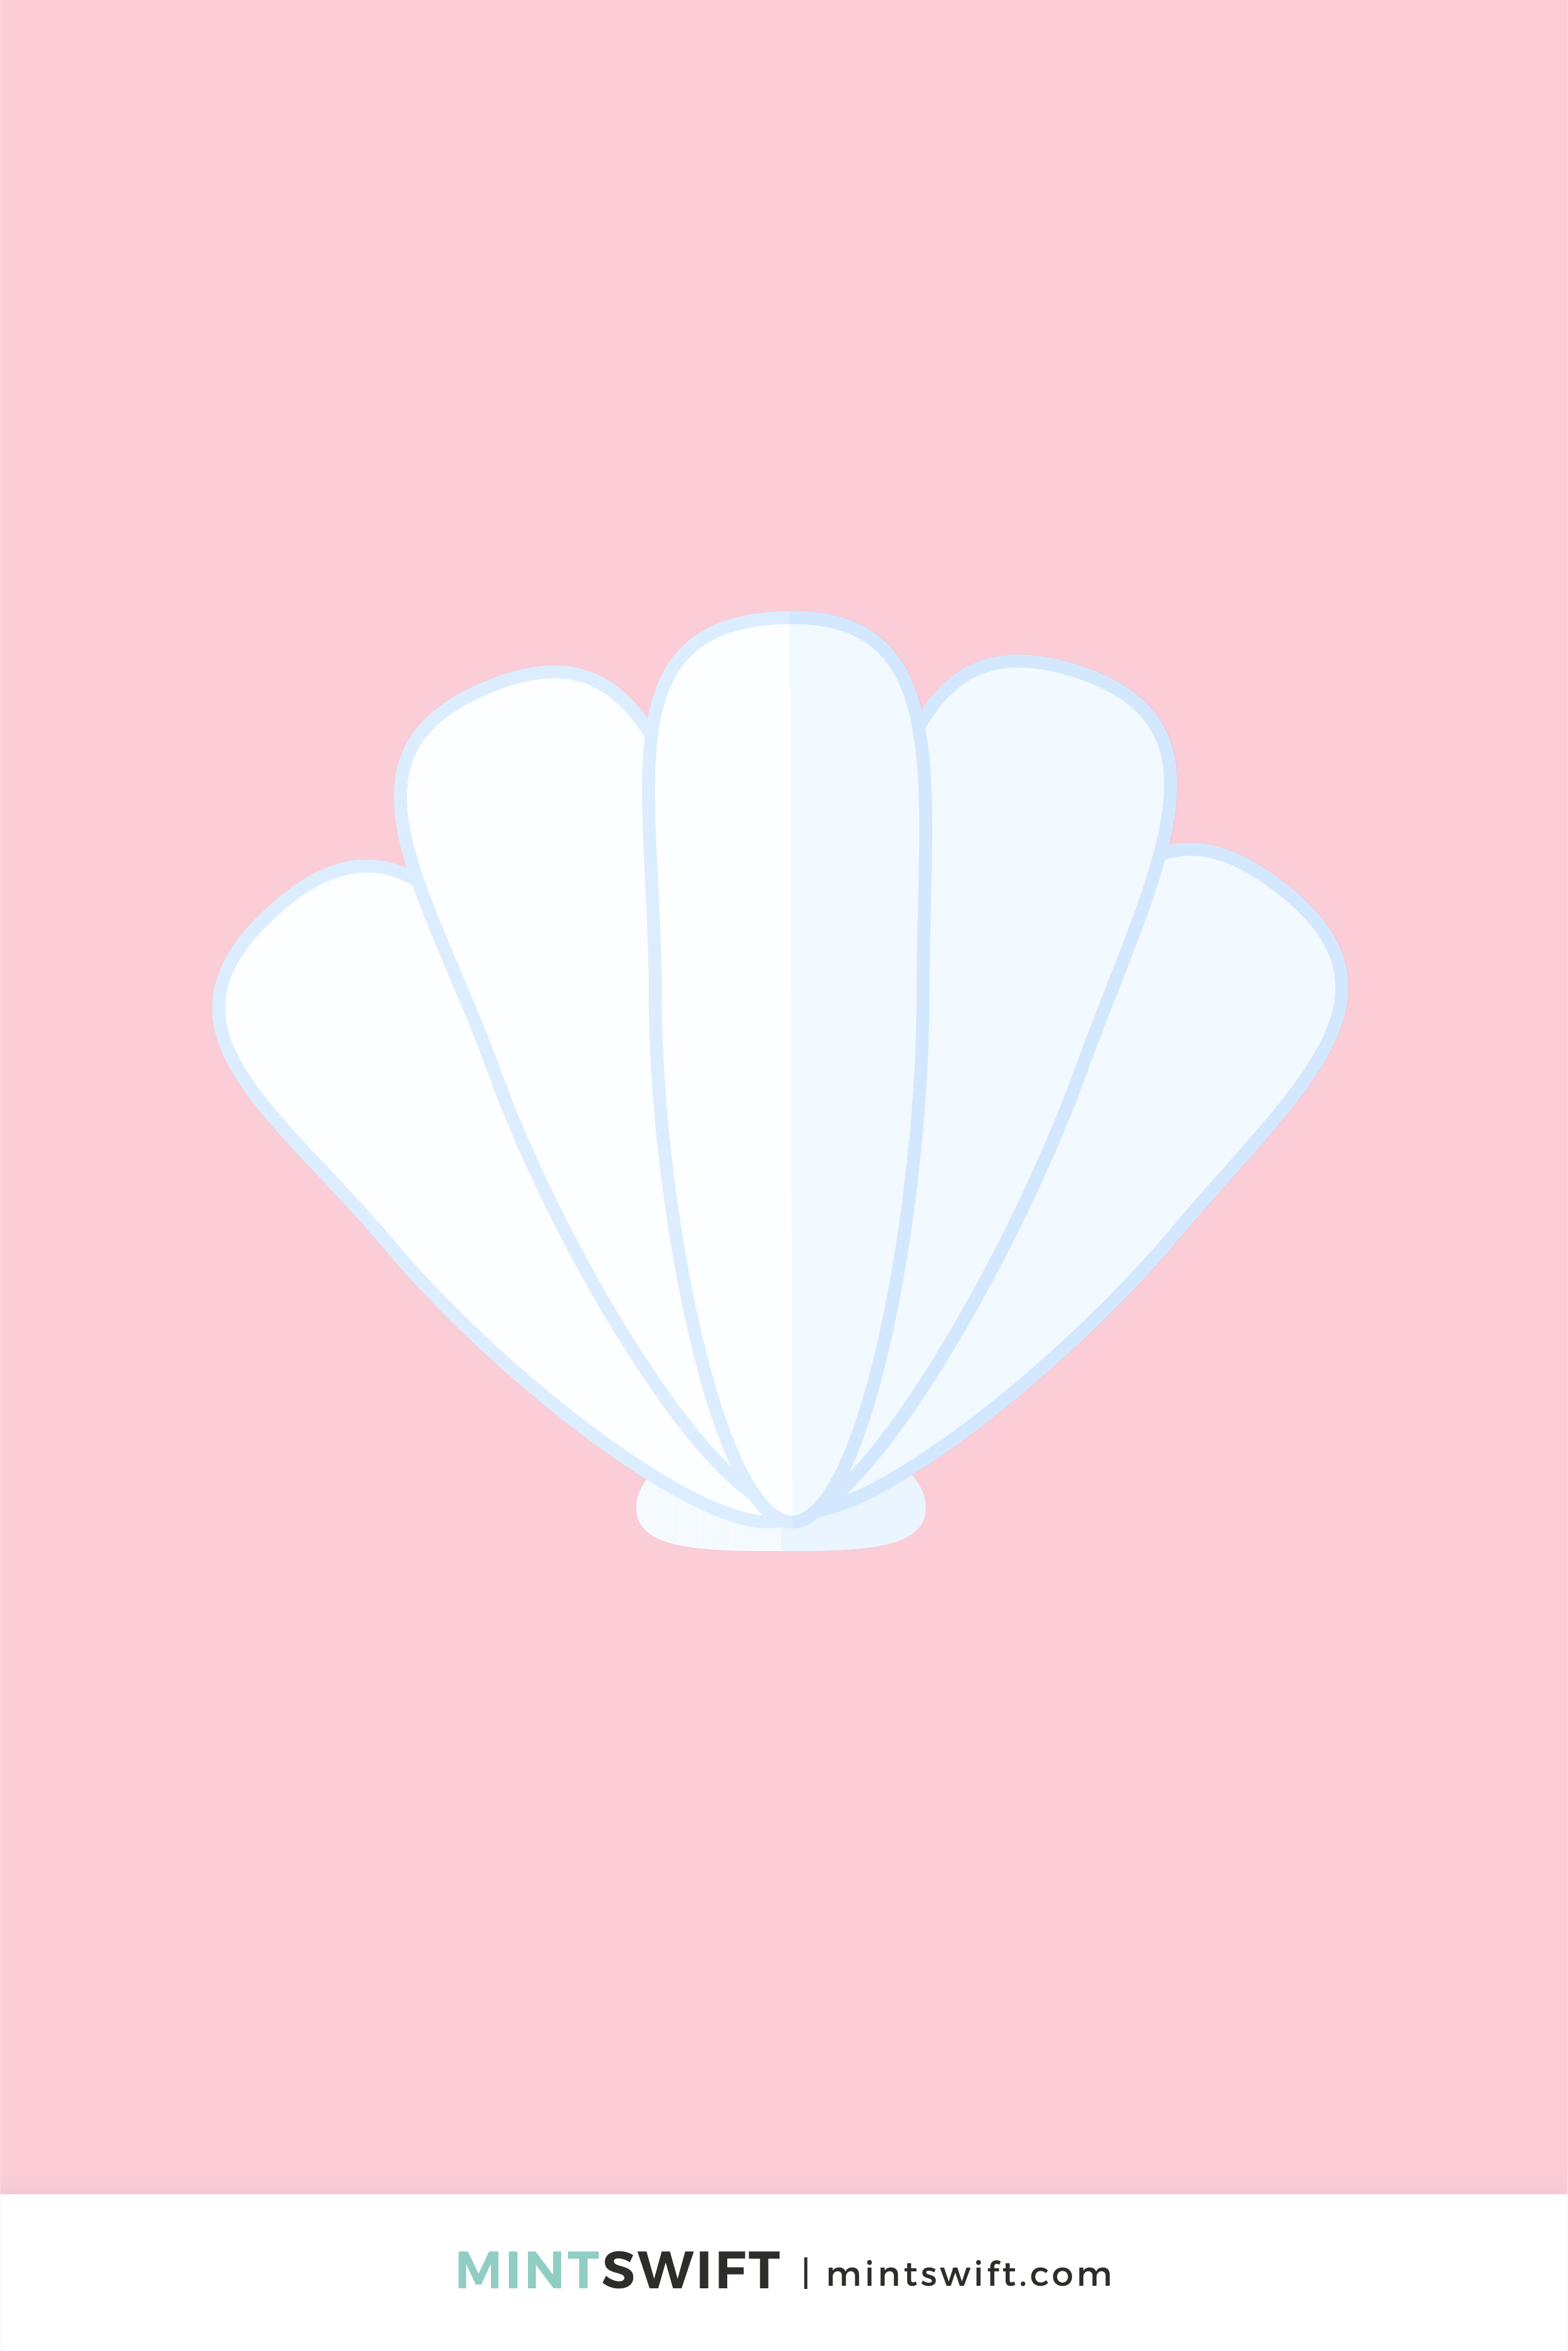 Light blue and white seashell vector illustration in flat design style on a pink background